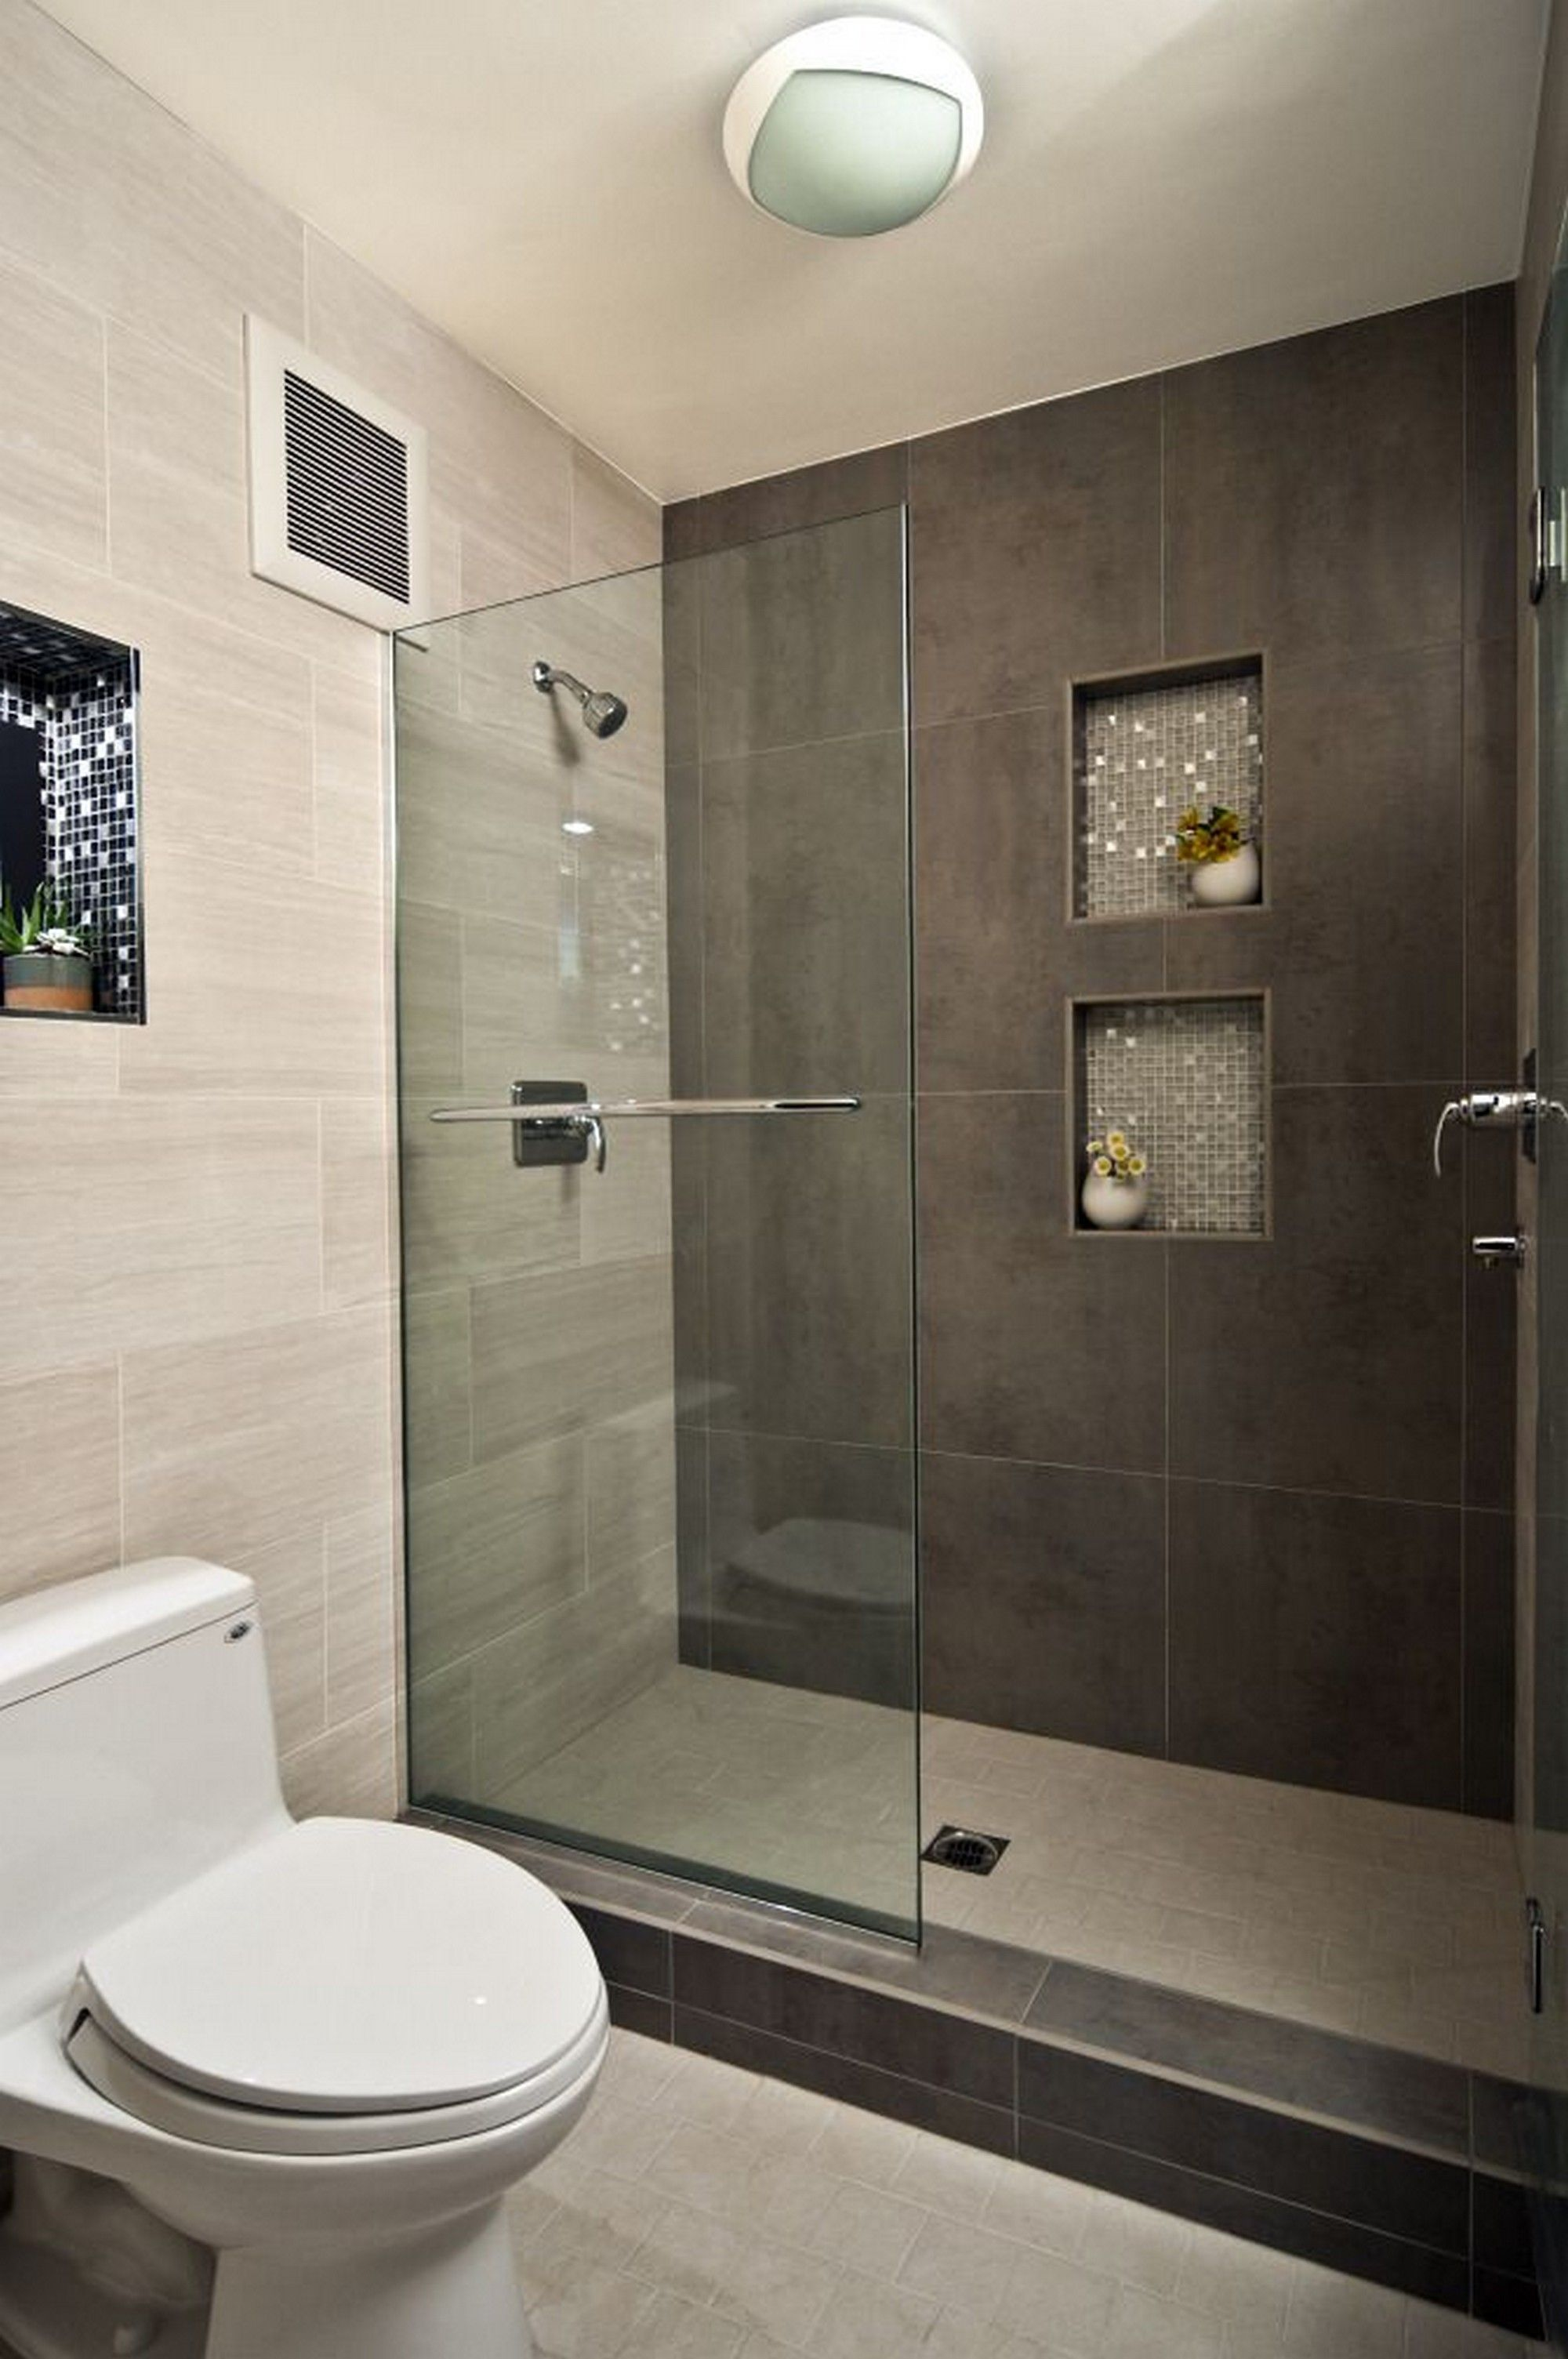 Modern bathroom design ideas with walk in shower small for Small bathroom remodel plans